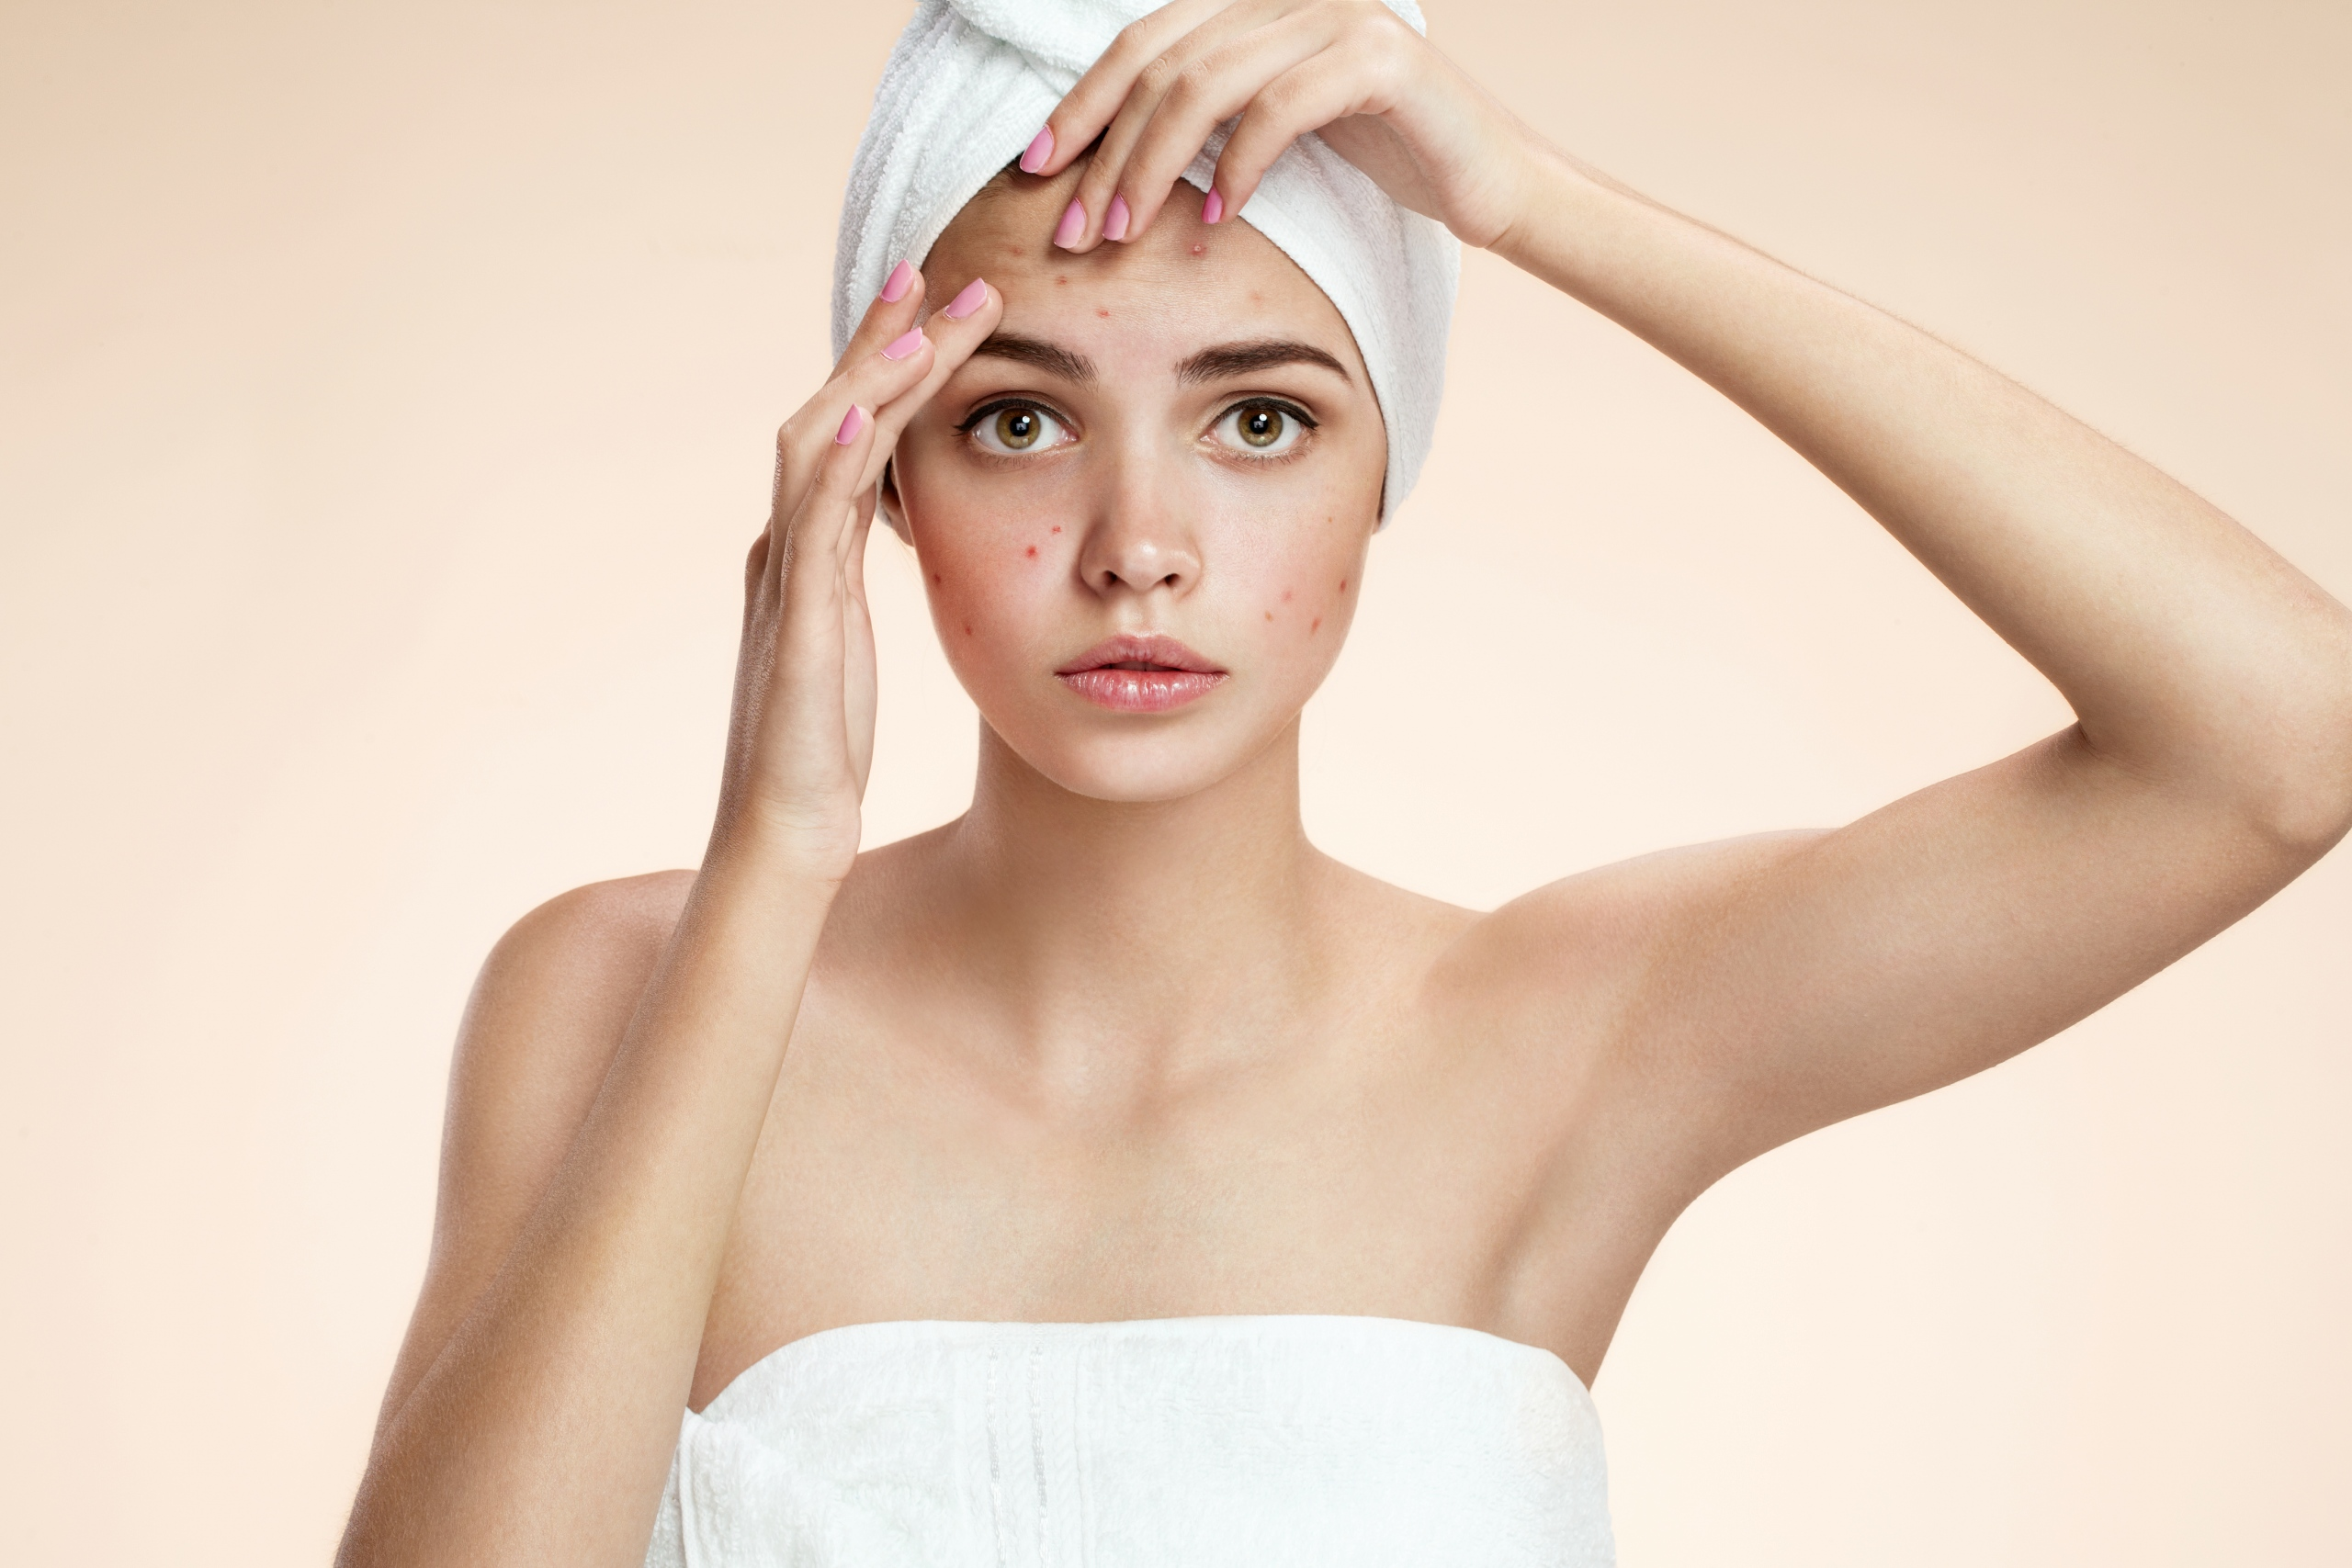 Why Does Acne Occur?